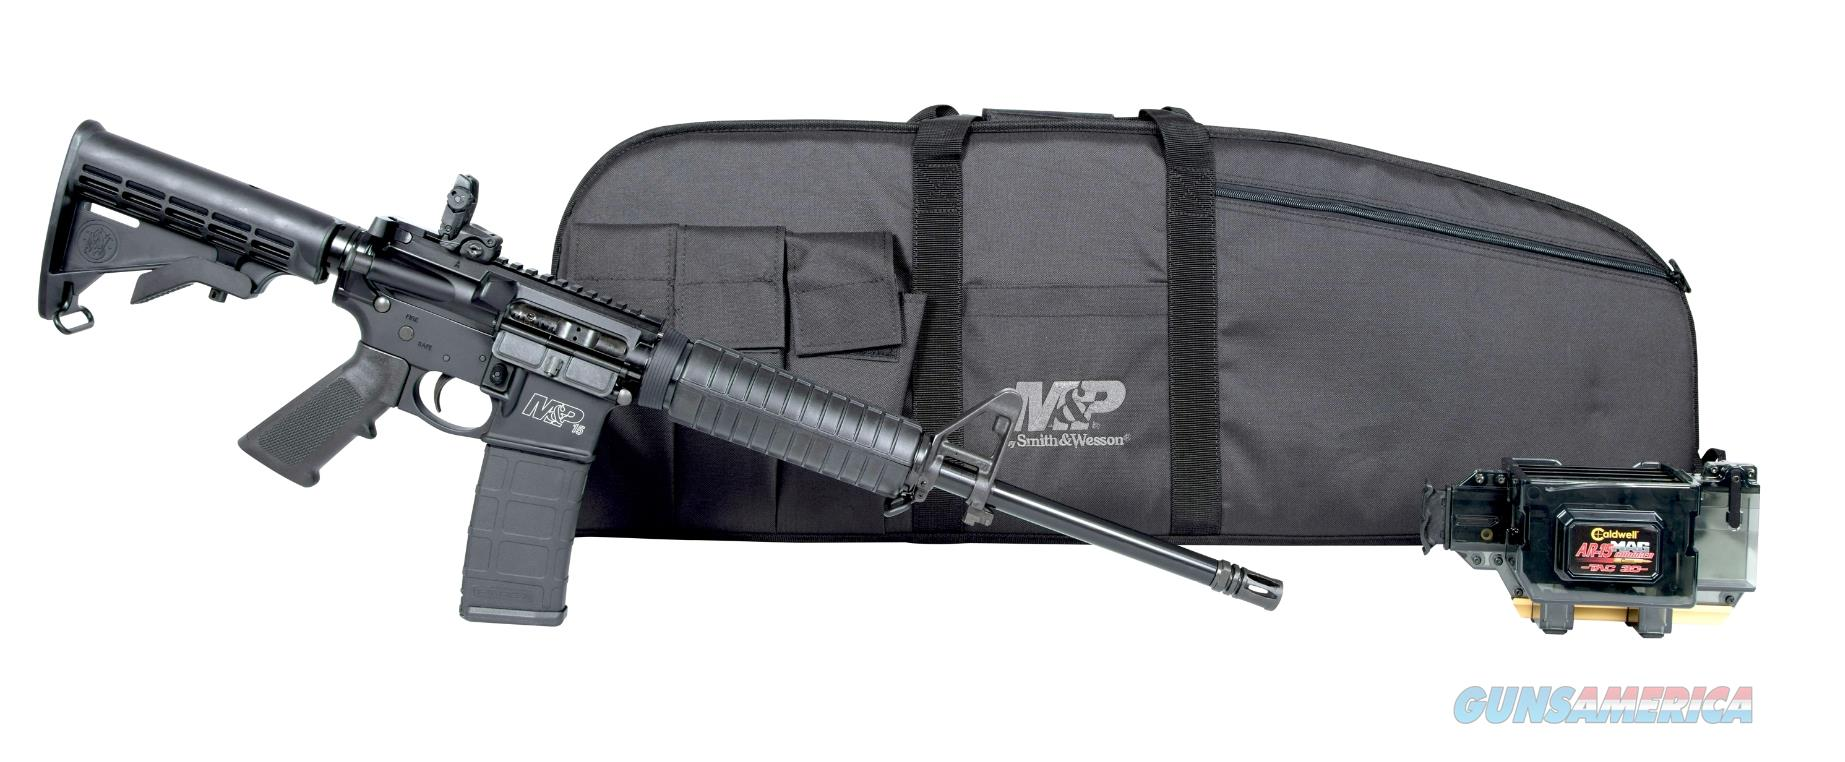 "Smith & Wesson 12095 M&P 15 Sport II Promo Kit Sport II Semi-Automatic 223 Remington/5.56 NATO 16""  Guns > Rifles > Smith & Wesson Rifles > M&P"